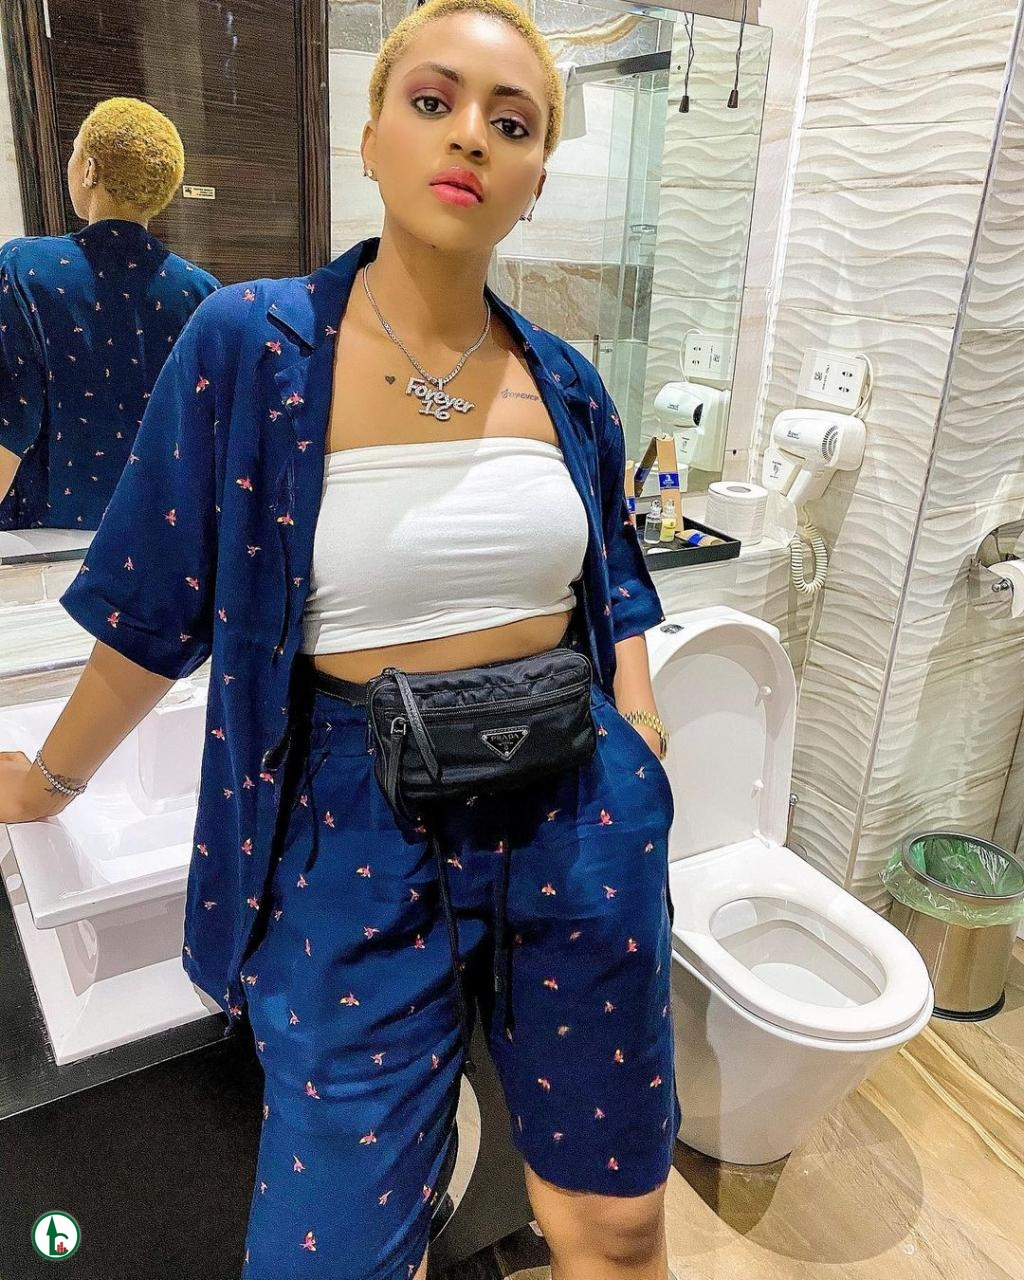 Regina Daniels Shows Her Bathroom On Social Media And Her Fans Go Haywire